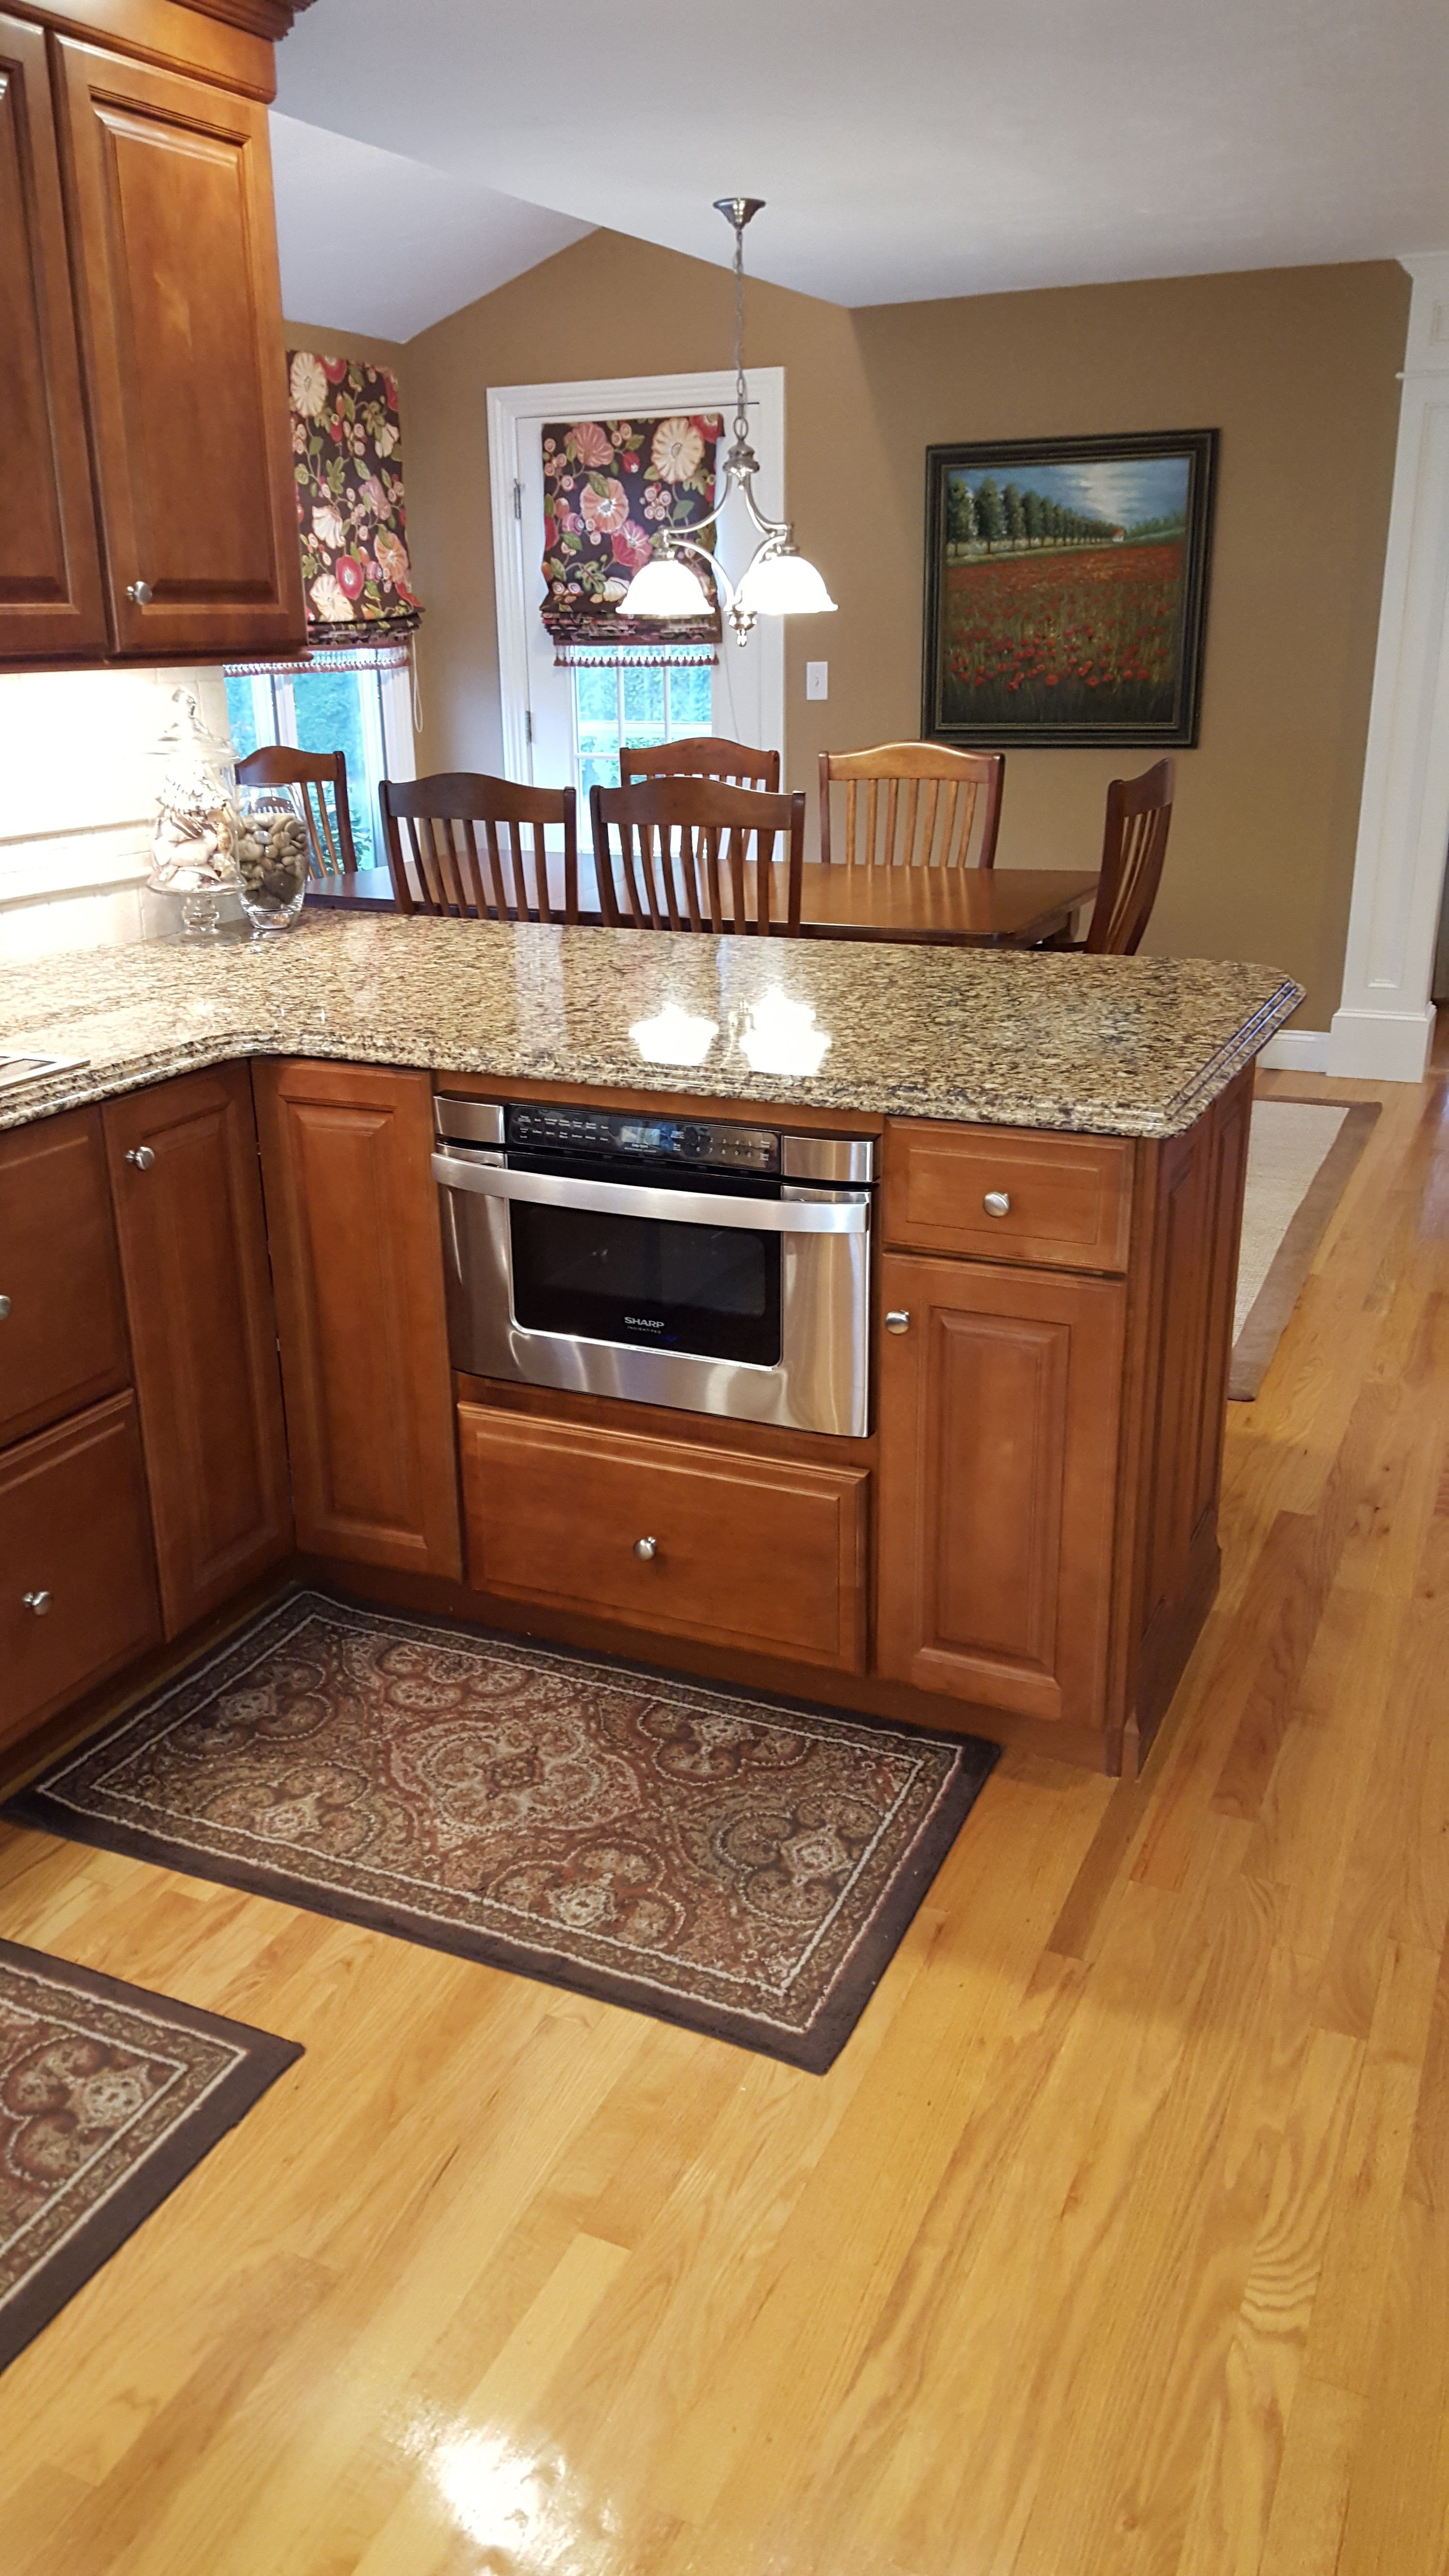 Diamond Cabinets, Sullivan Full Overlay Door Style, Maple In Harvest Stain.  Countertop Is Cambria Quartz, Color Is Canterbury With A Double Ogee Edge.